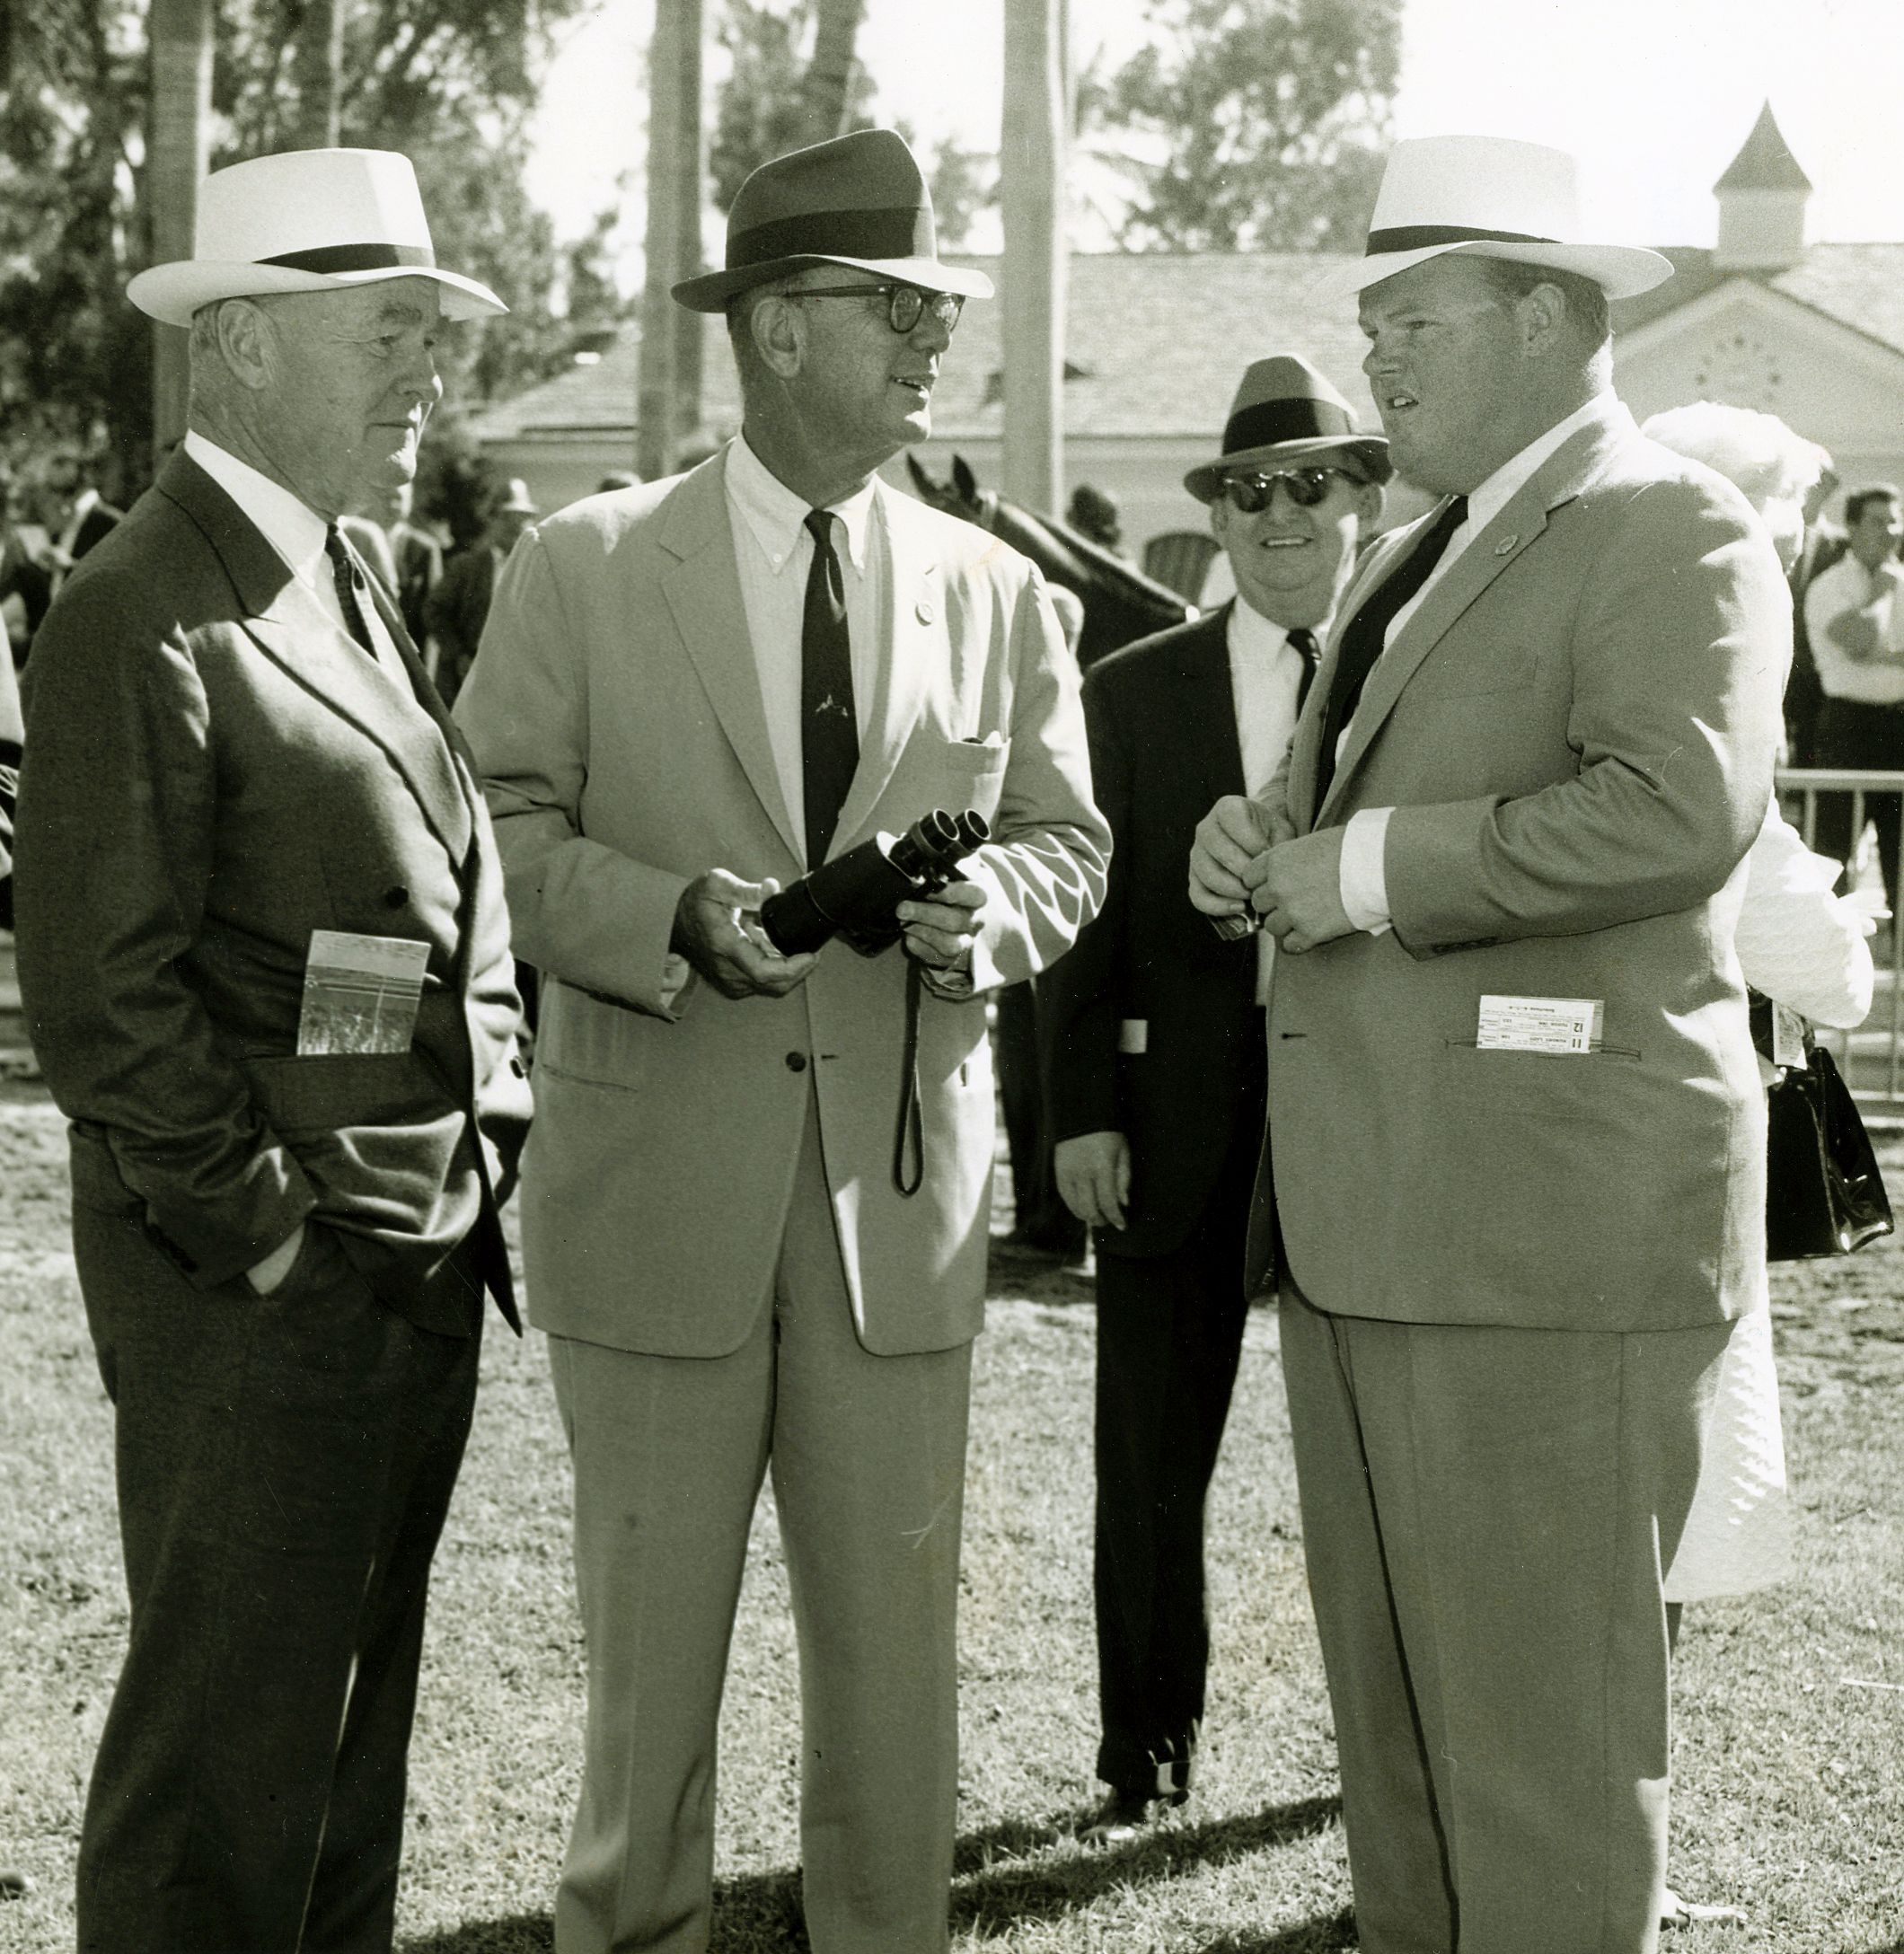 Ogden Phipps, Bull Hancock, and Dinny Phipps in the paddock in 1966 (Keeneland Library Thoroughbred Times Collection)